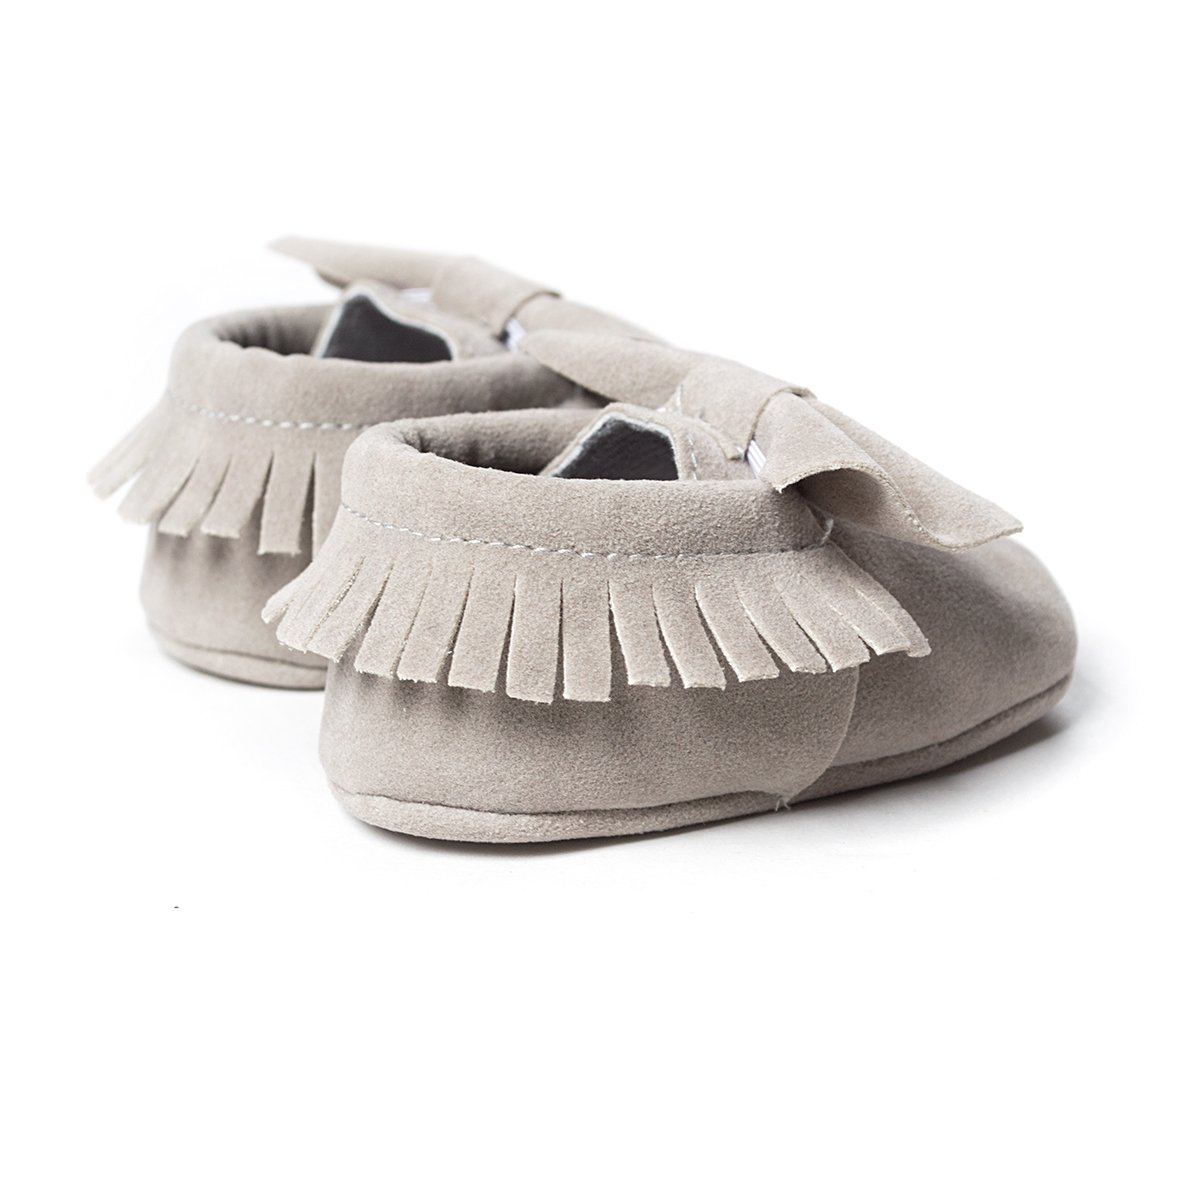 LIVEBOX Infant Baby Girls and Boys Premium Soft Sole Moccasins Tassels Prewalker Anti-Slip Toddler Shoes (S: 0~6 Months, Bow-Light Grey) by LIVEBOX (Image #3)